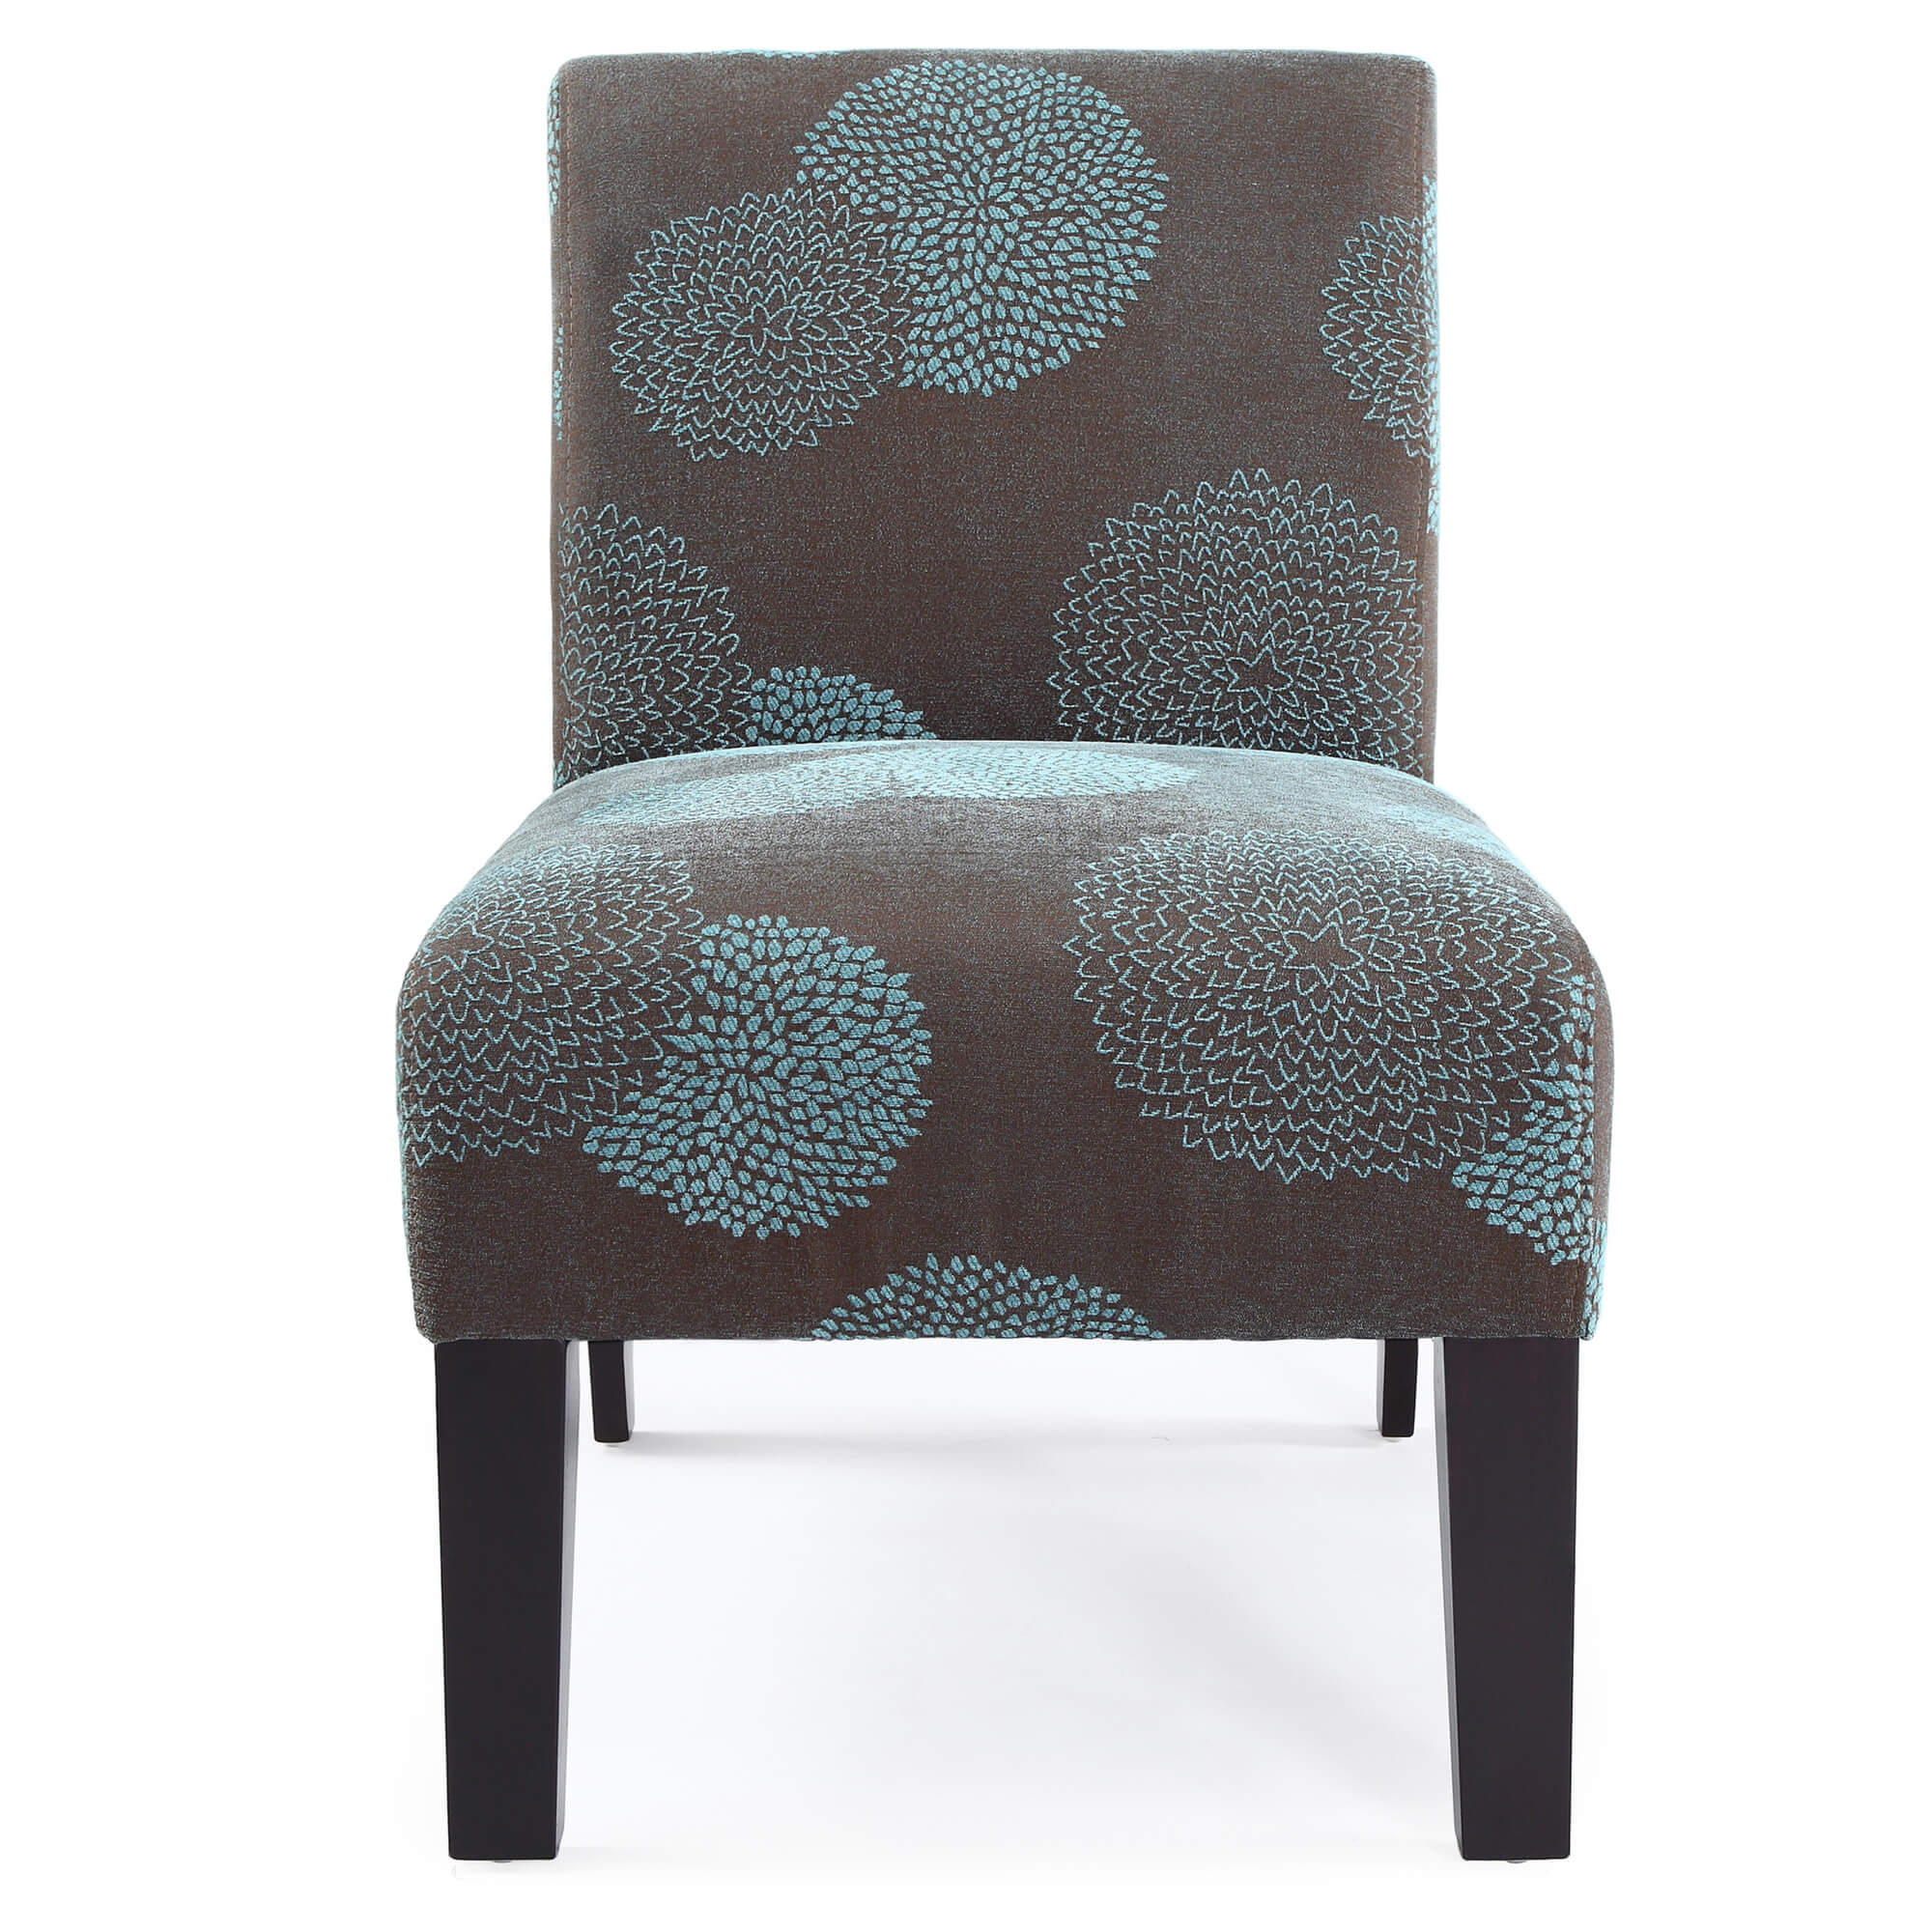 This grey and blue accent chair would fit nicely in a room with some blue (i.e. drapes, wall art, pillows, other furniture, etc.).